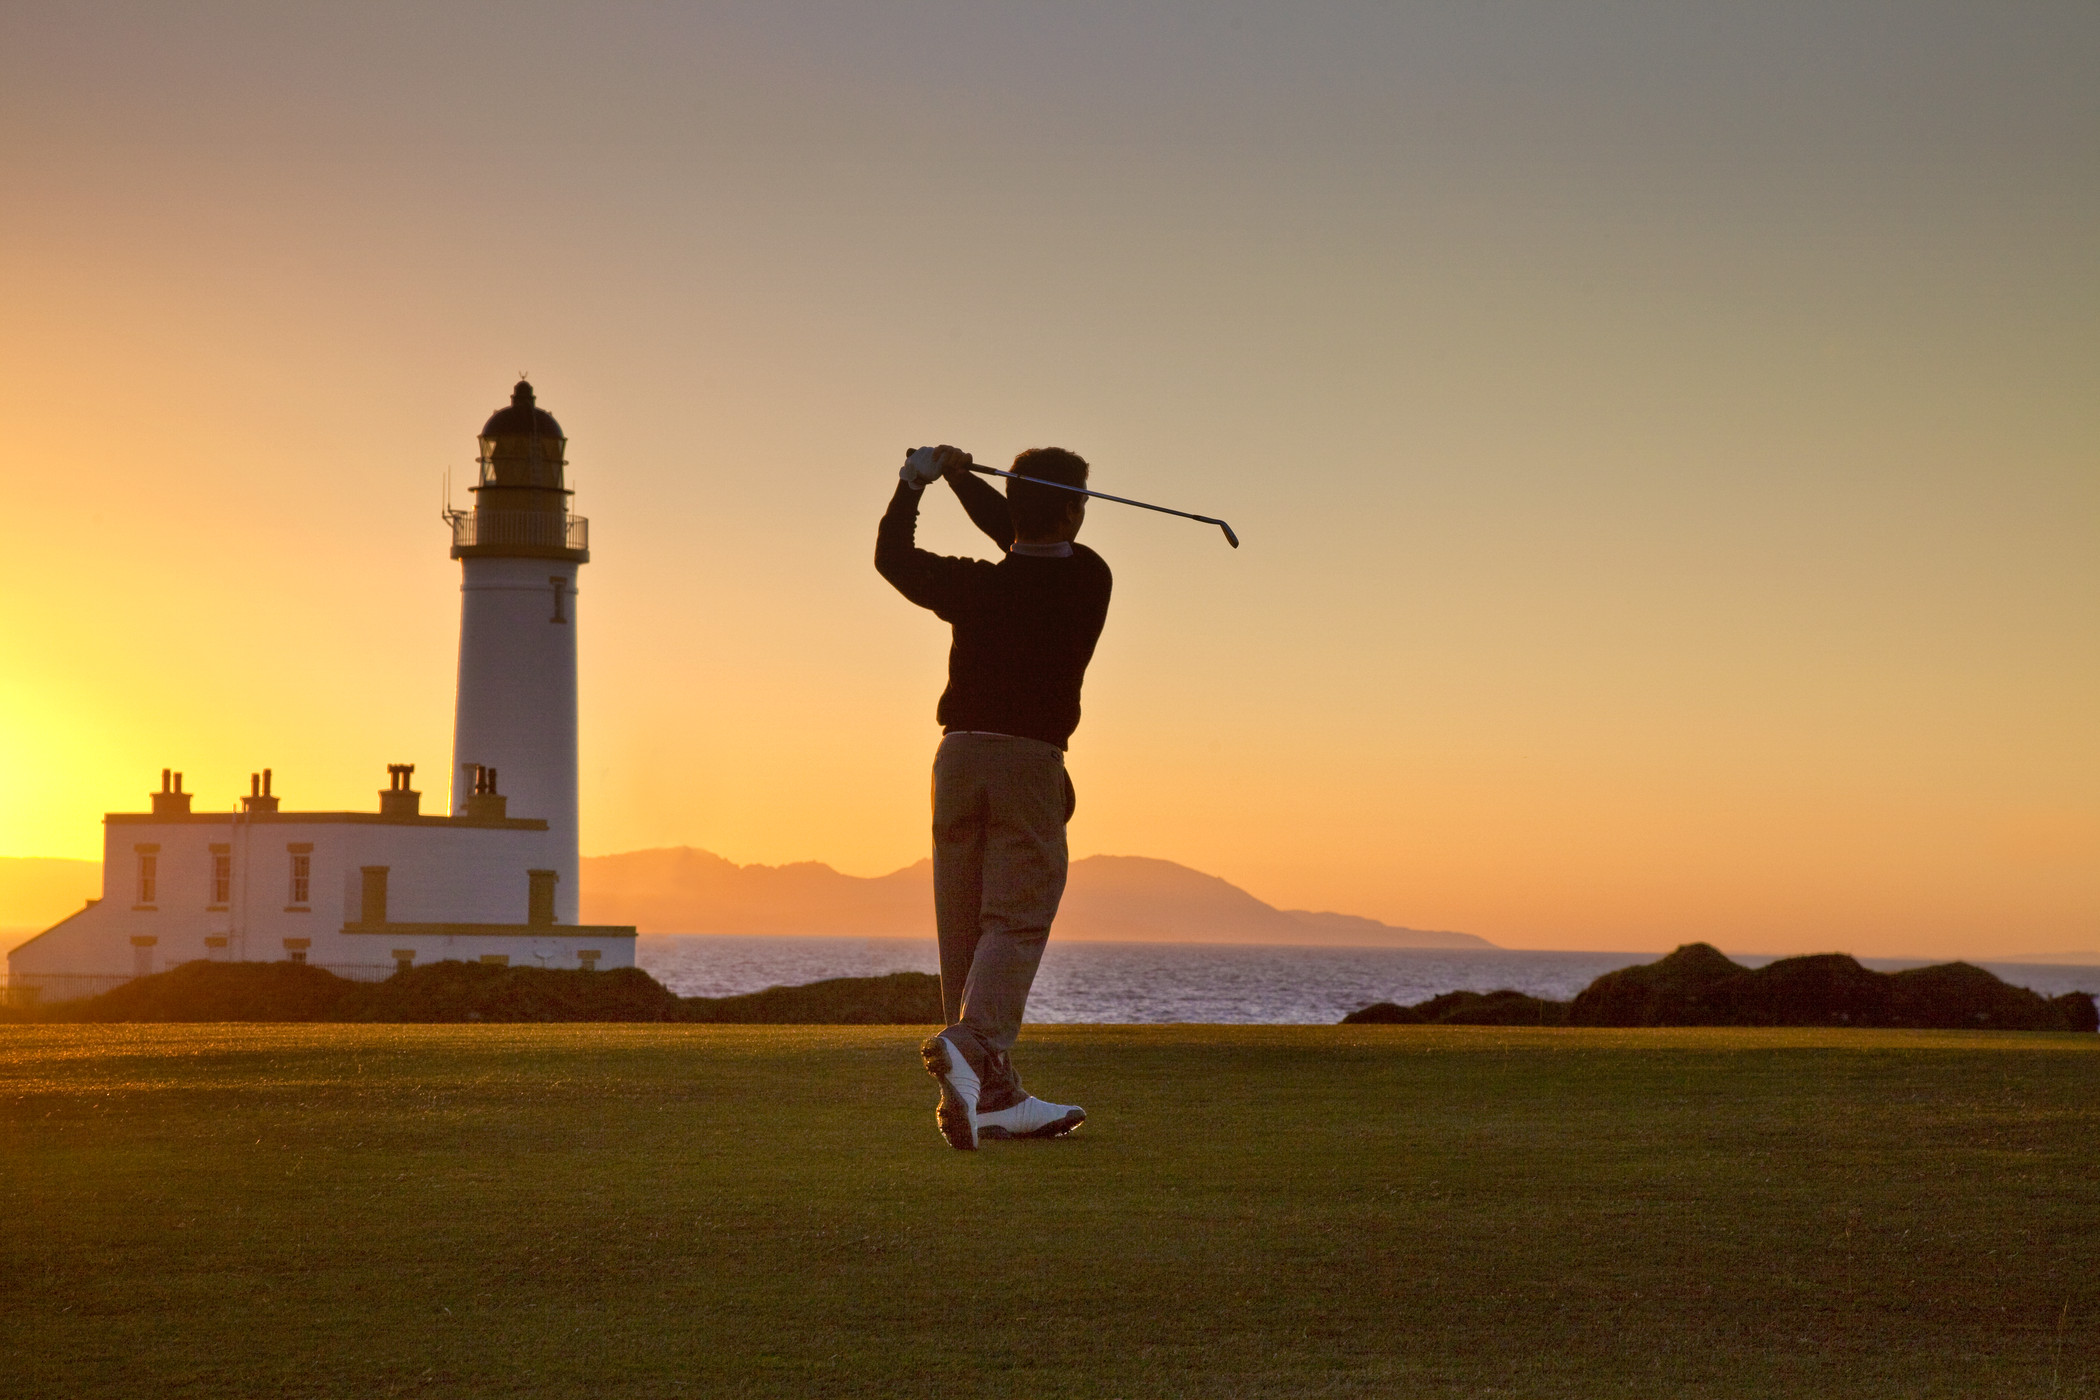 2012-09-20-sunsetgolf.jpg